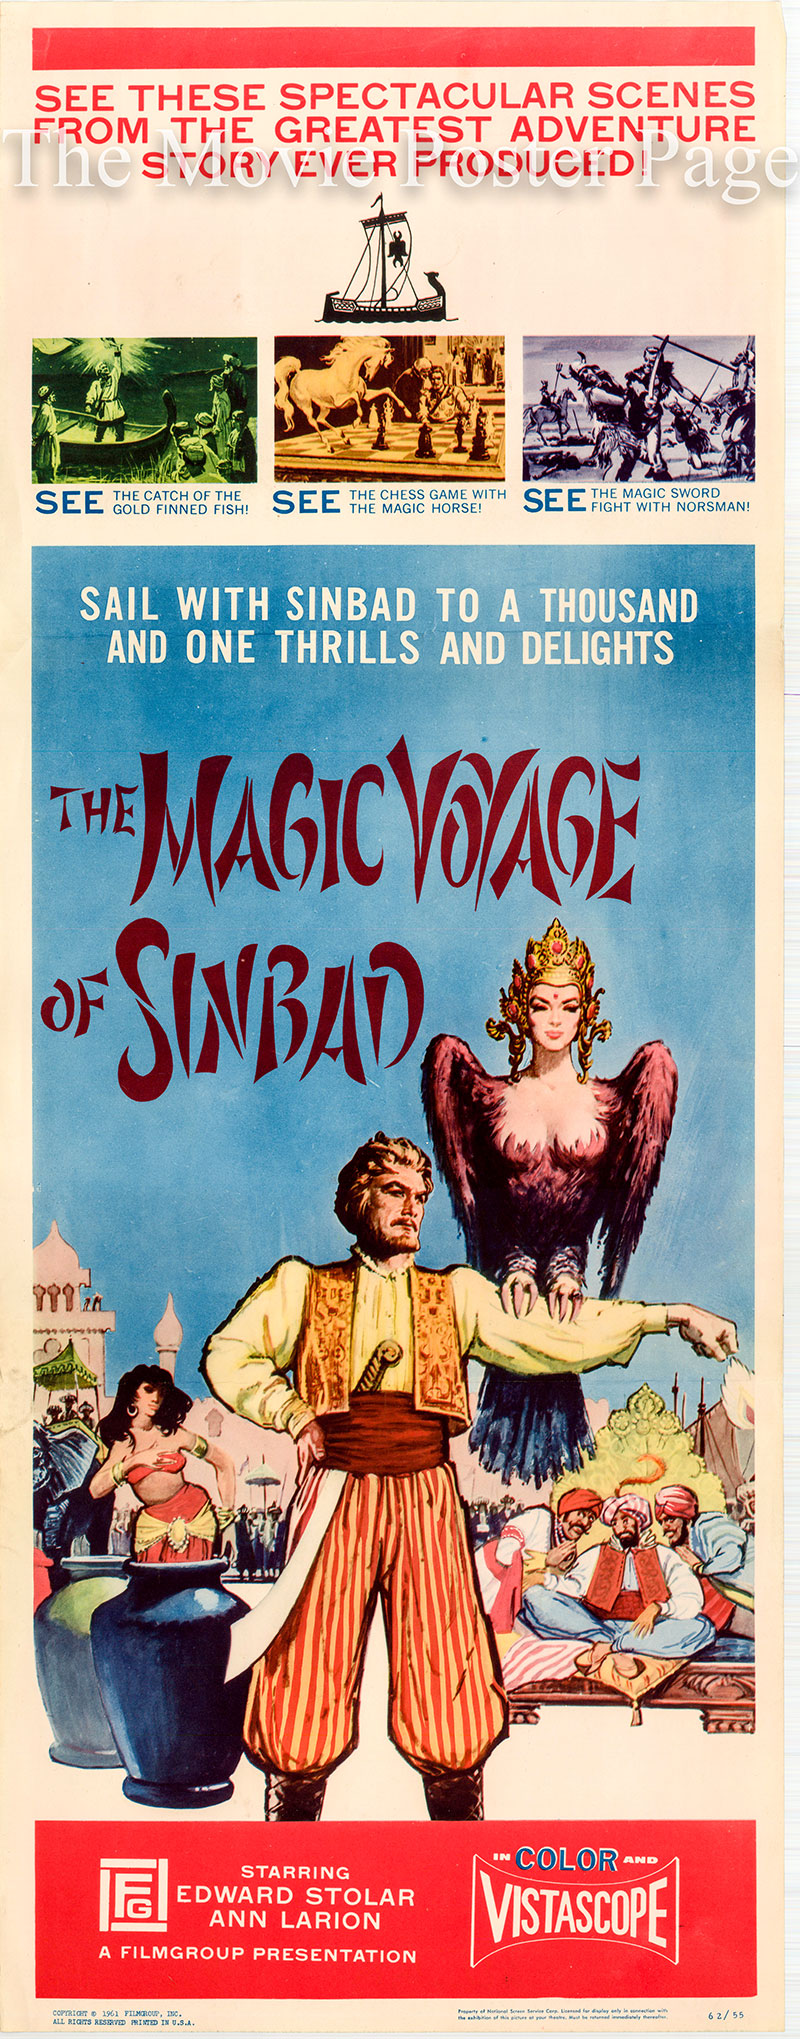 Pictured is a US insert poster for the 1961 Aleksandr Ptushko film The Magic Voyage of Sinbad starring Edward Stolar.